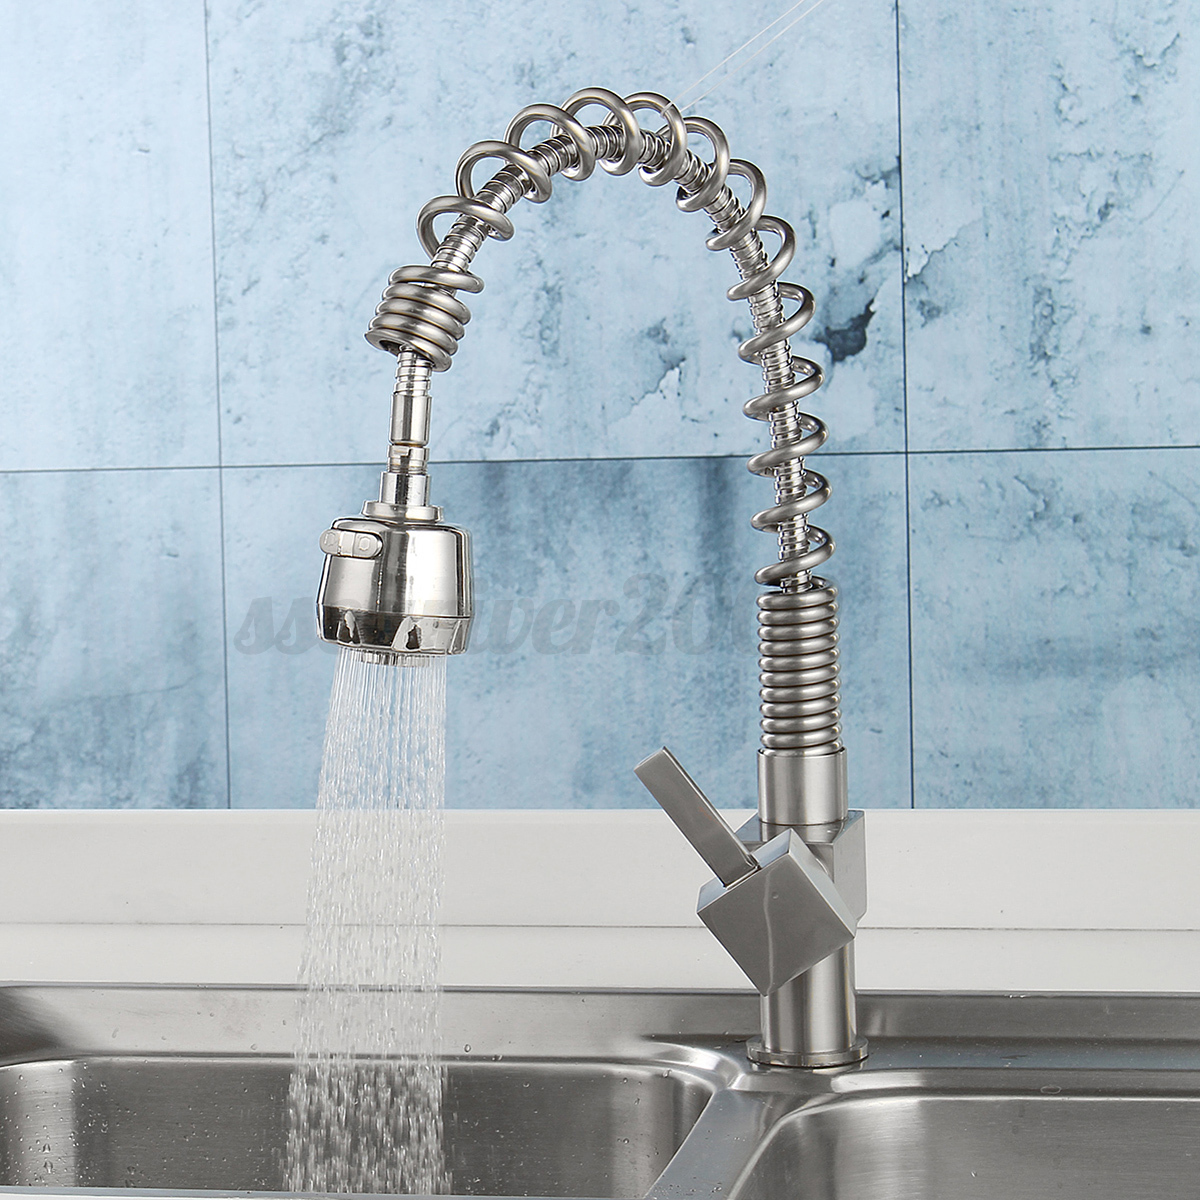 Kitchen Faucet Swivel Spout Pull Down Sprayer Bathroom Sink Mixer ...